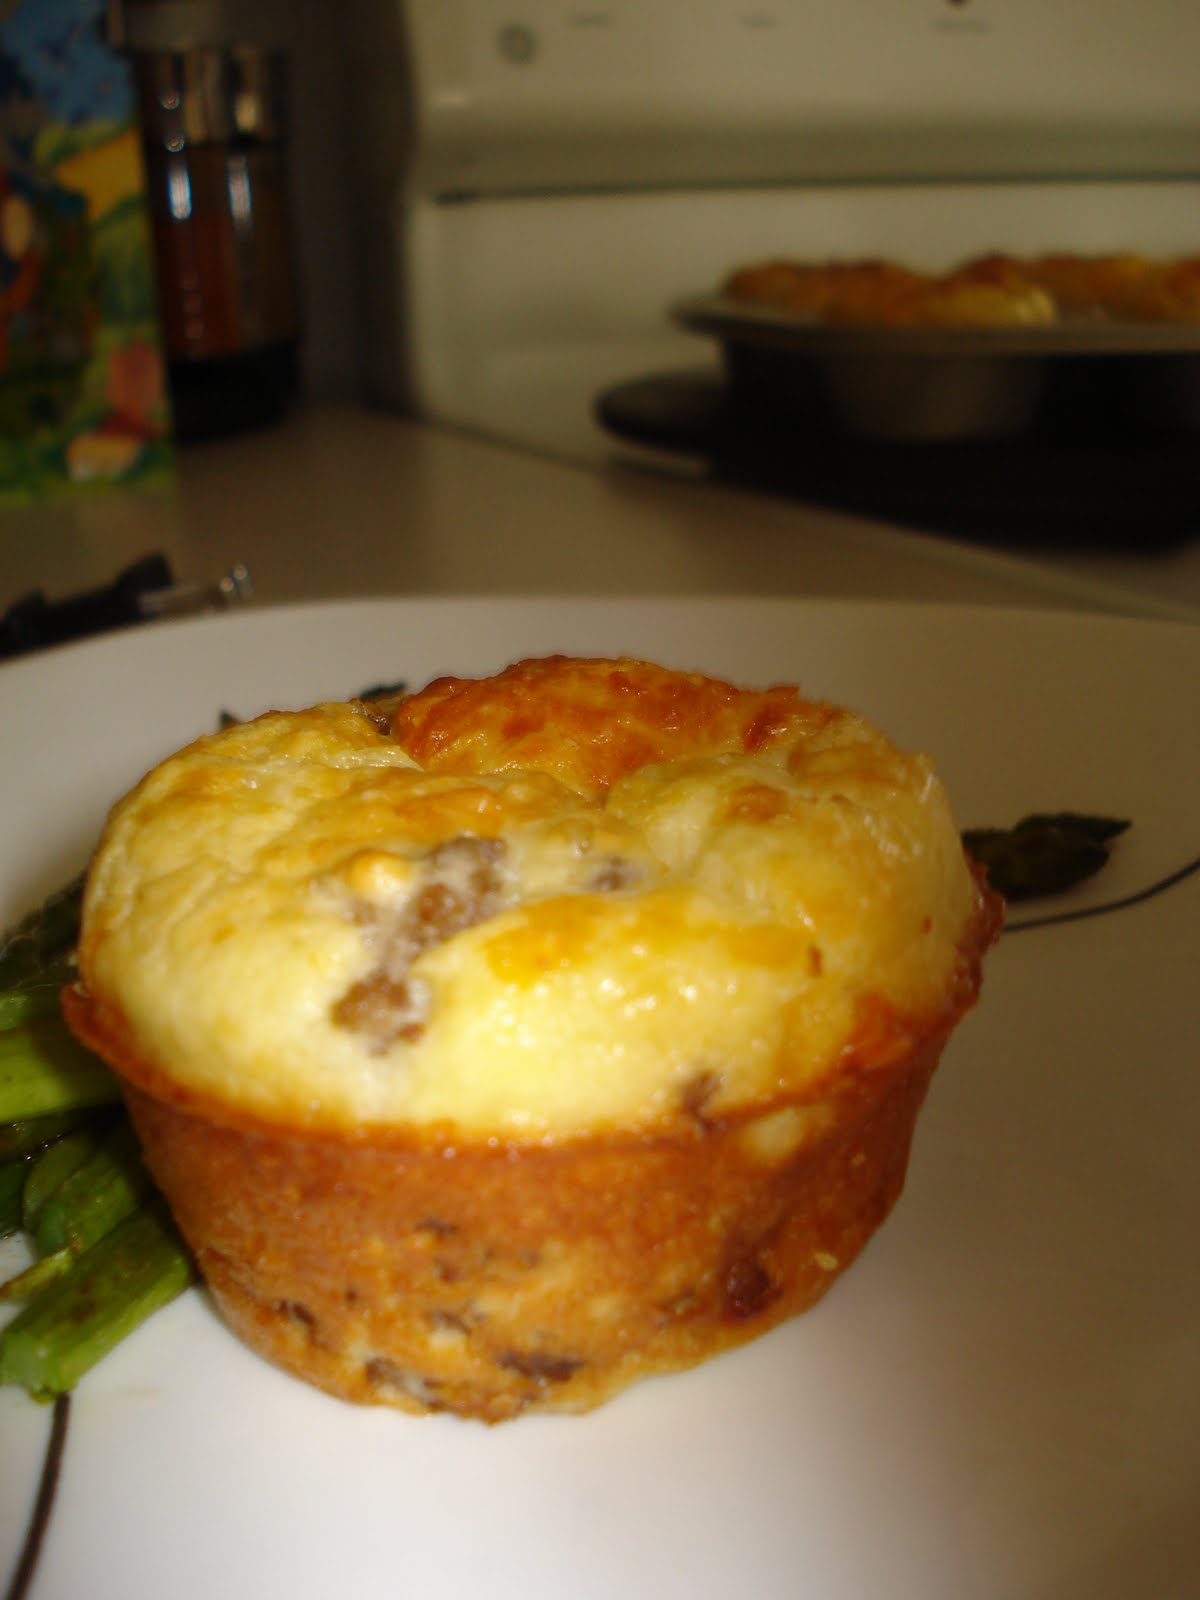 ... from the Heart for the Home: Easy Please. . . Cheeseburger muffins